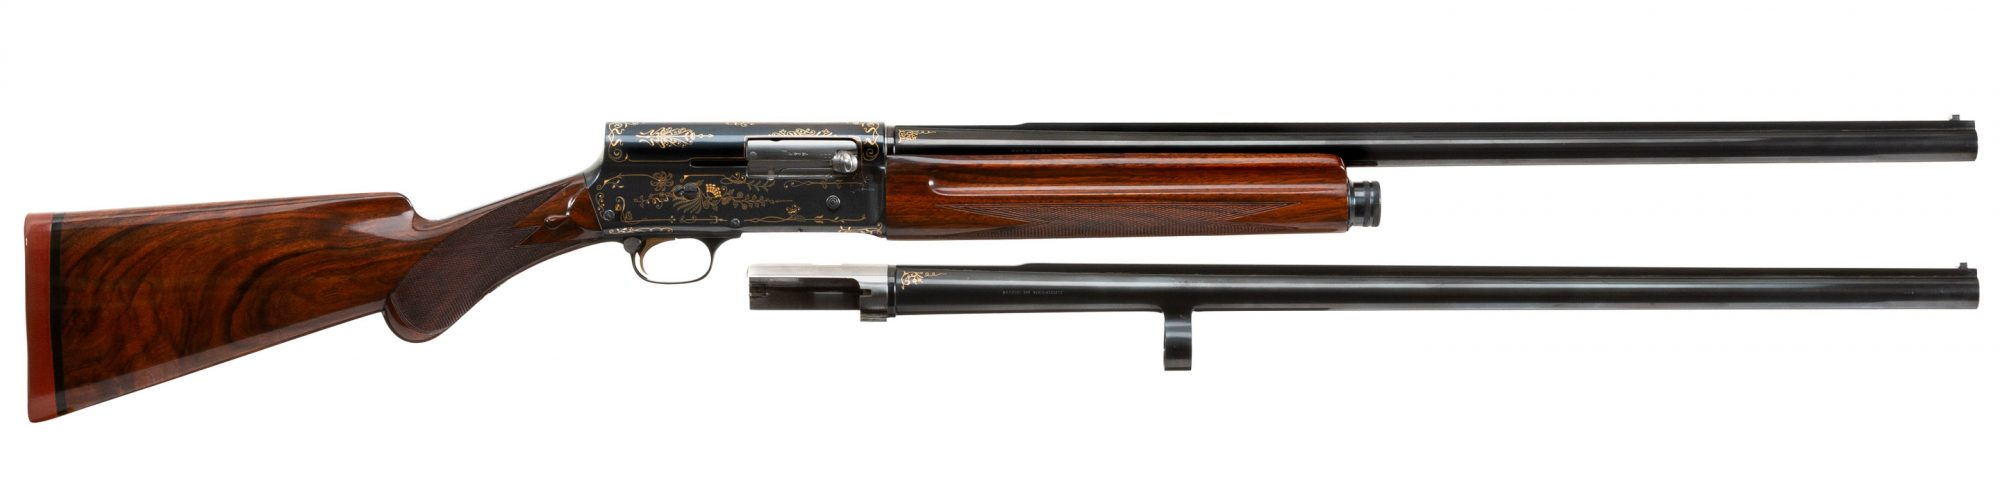 Photo of a pre-owned Browning A5 shotgun with 2nd barrel, for sale by Turnbull Restoration of Bloomfield, NY